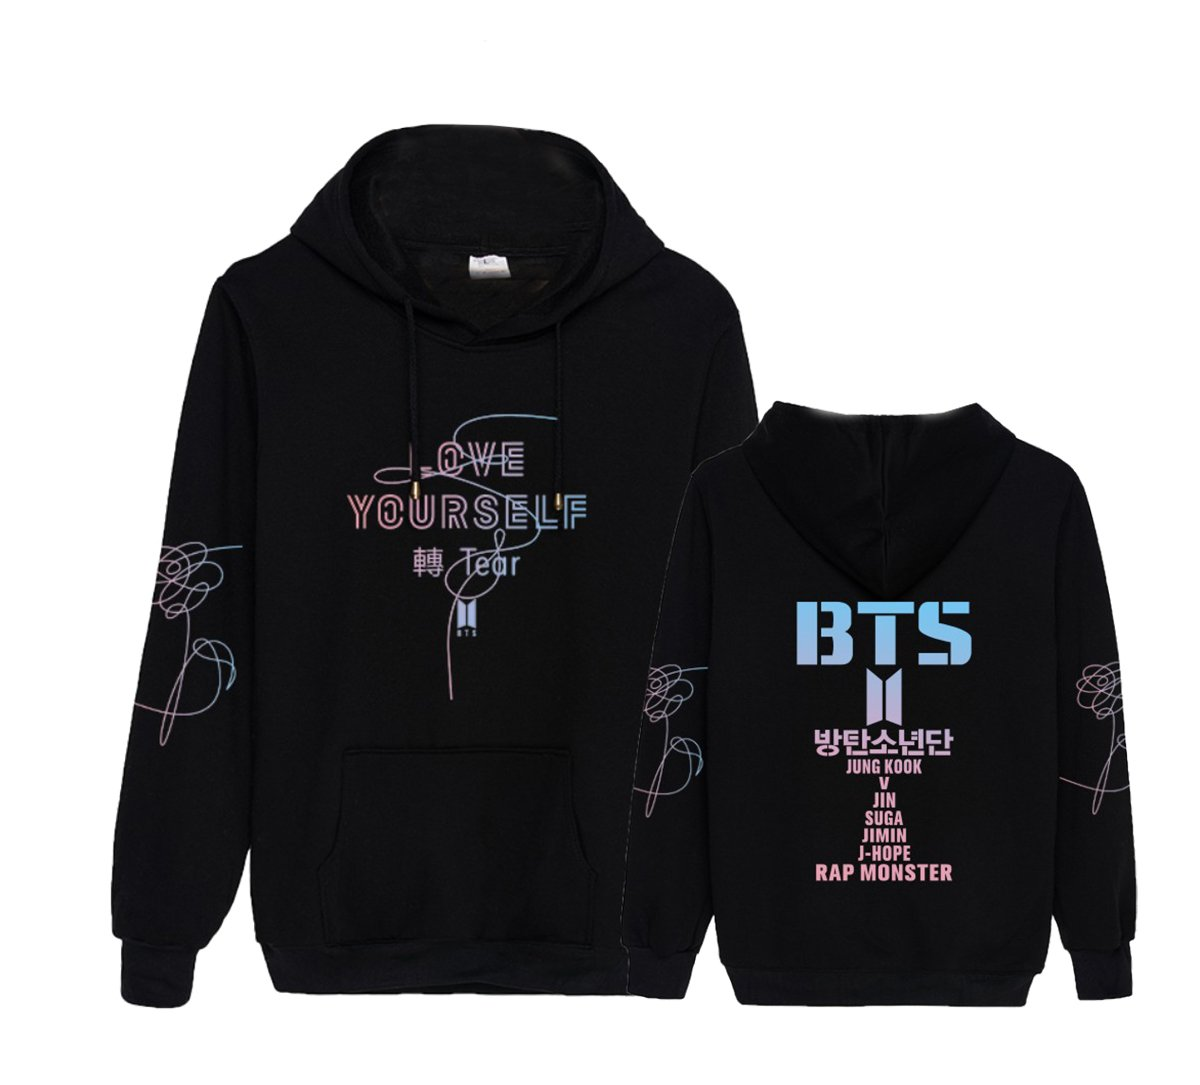 Kpop BTS Love Yourself Hoodie J-Hope Jimin Jung Kook V Pullover Sweater by ACEFAST INC (Image #1)